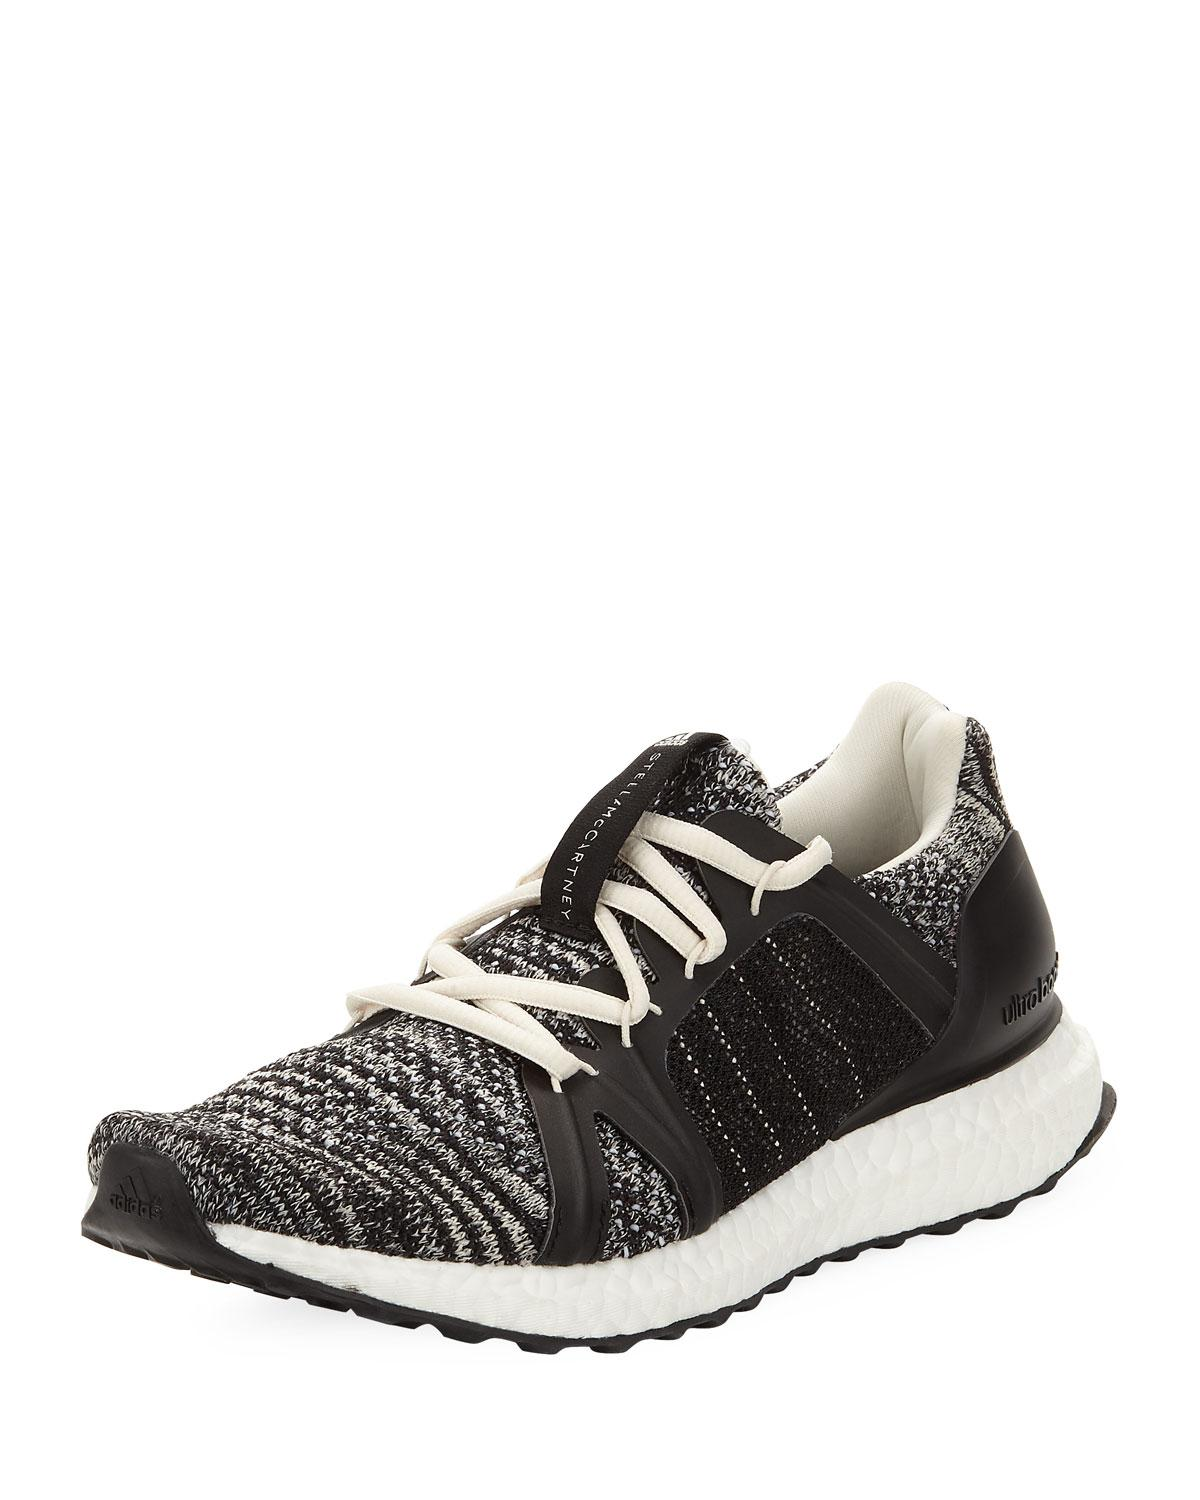 65e6330d2d0 Lyst - adidas By Stella McCartney Ultra Boost Parley Knit Trainer ...